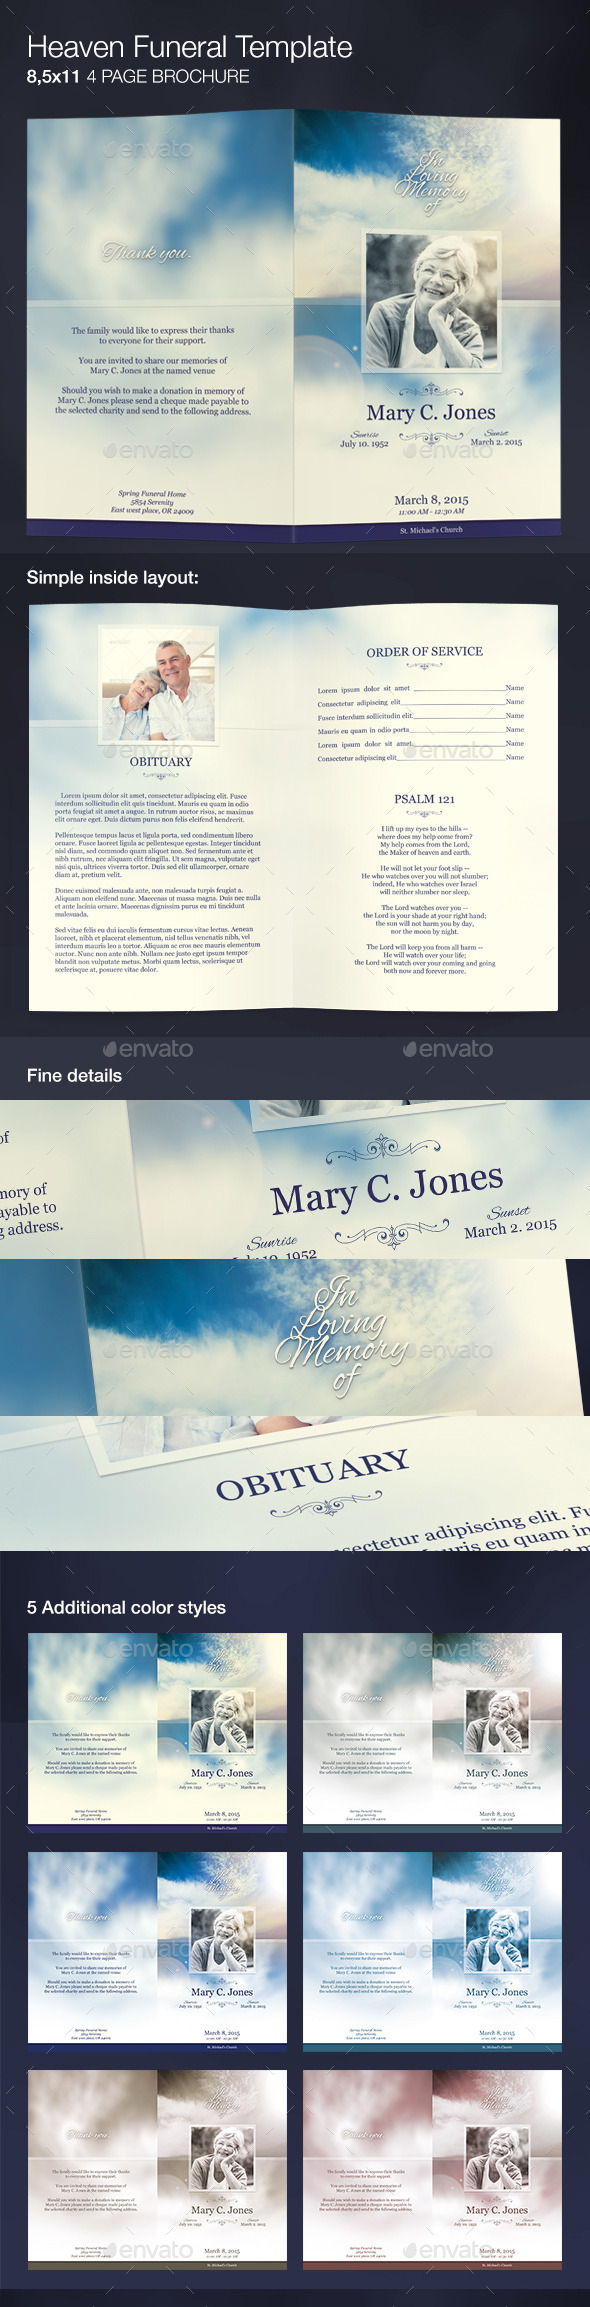 GraphicRiver Heaven Funeral Program Template 9753716